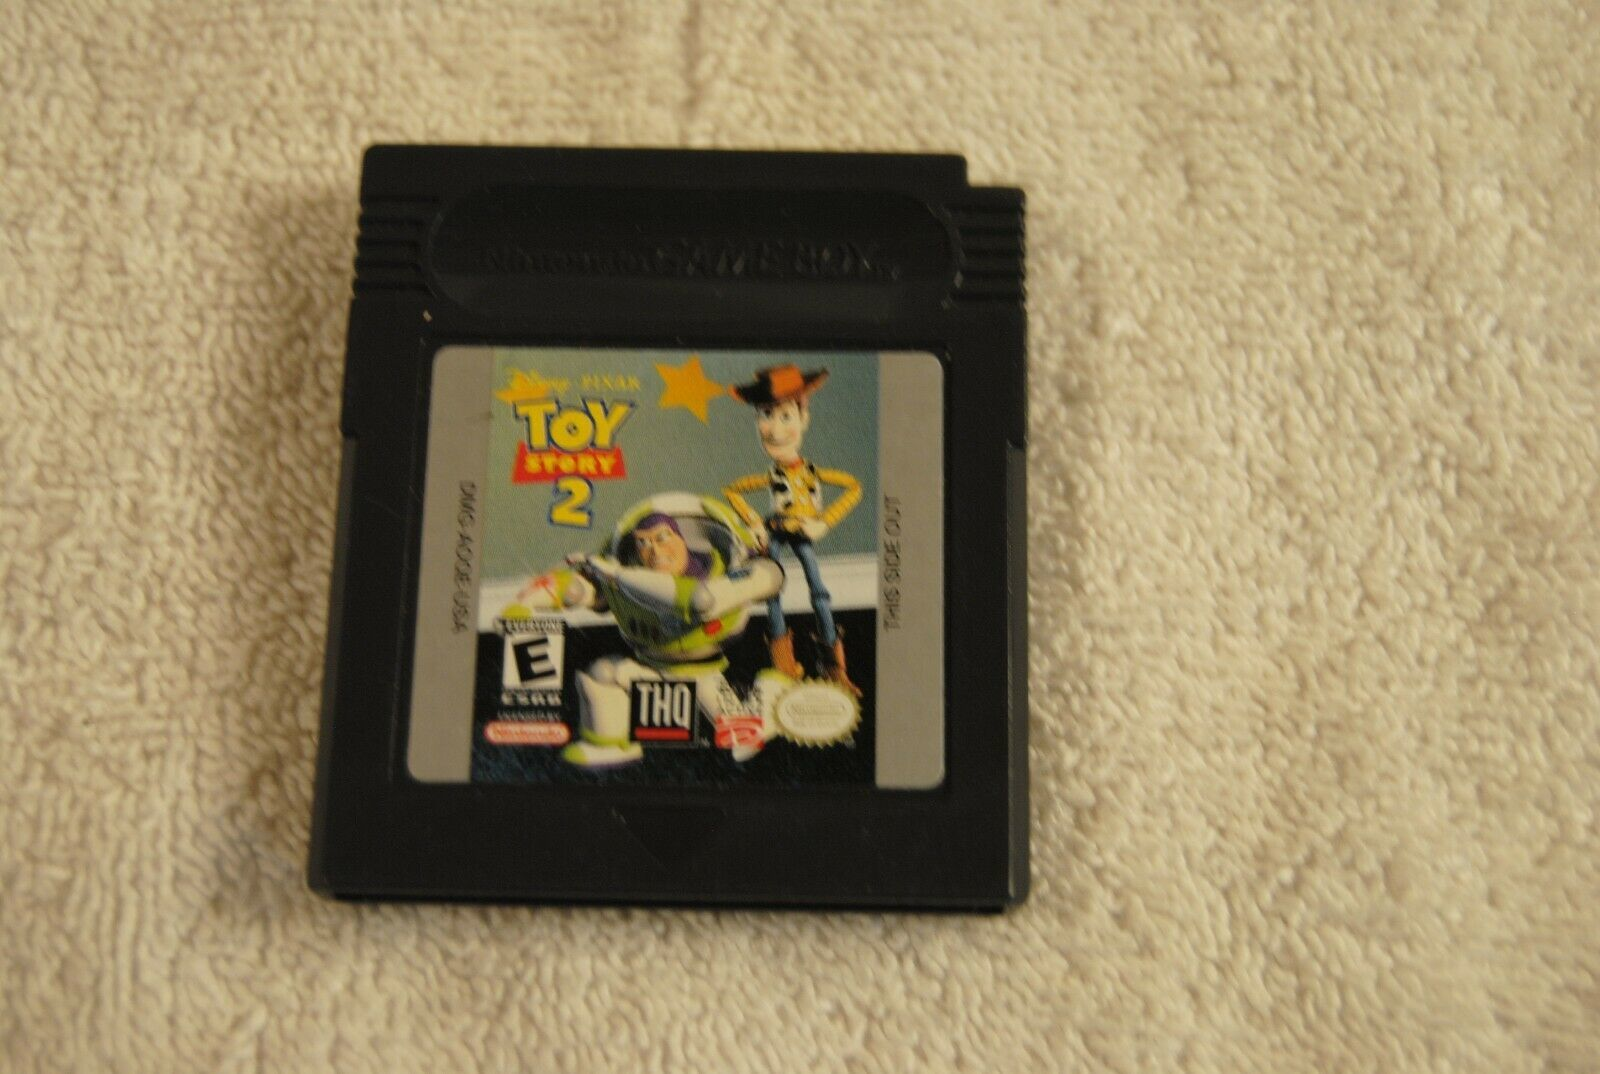 Toy Story 2 (Nintendo Game Boy Color, 1999) Gameboy